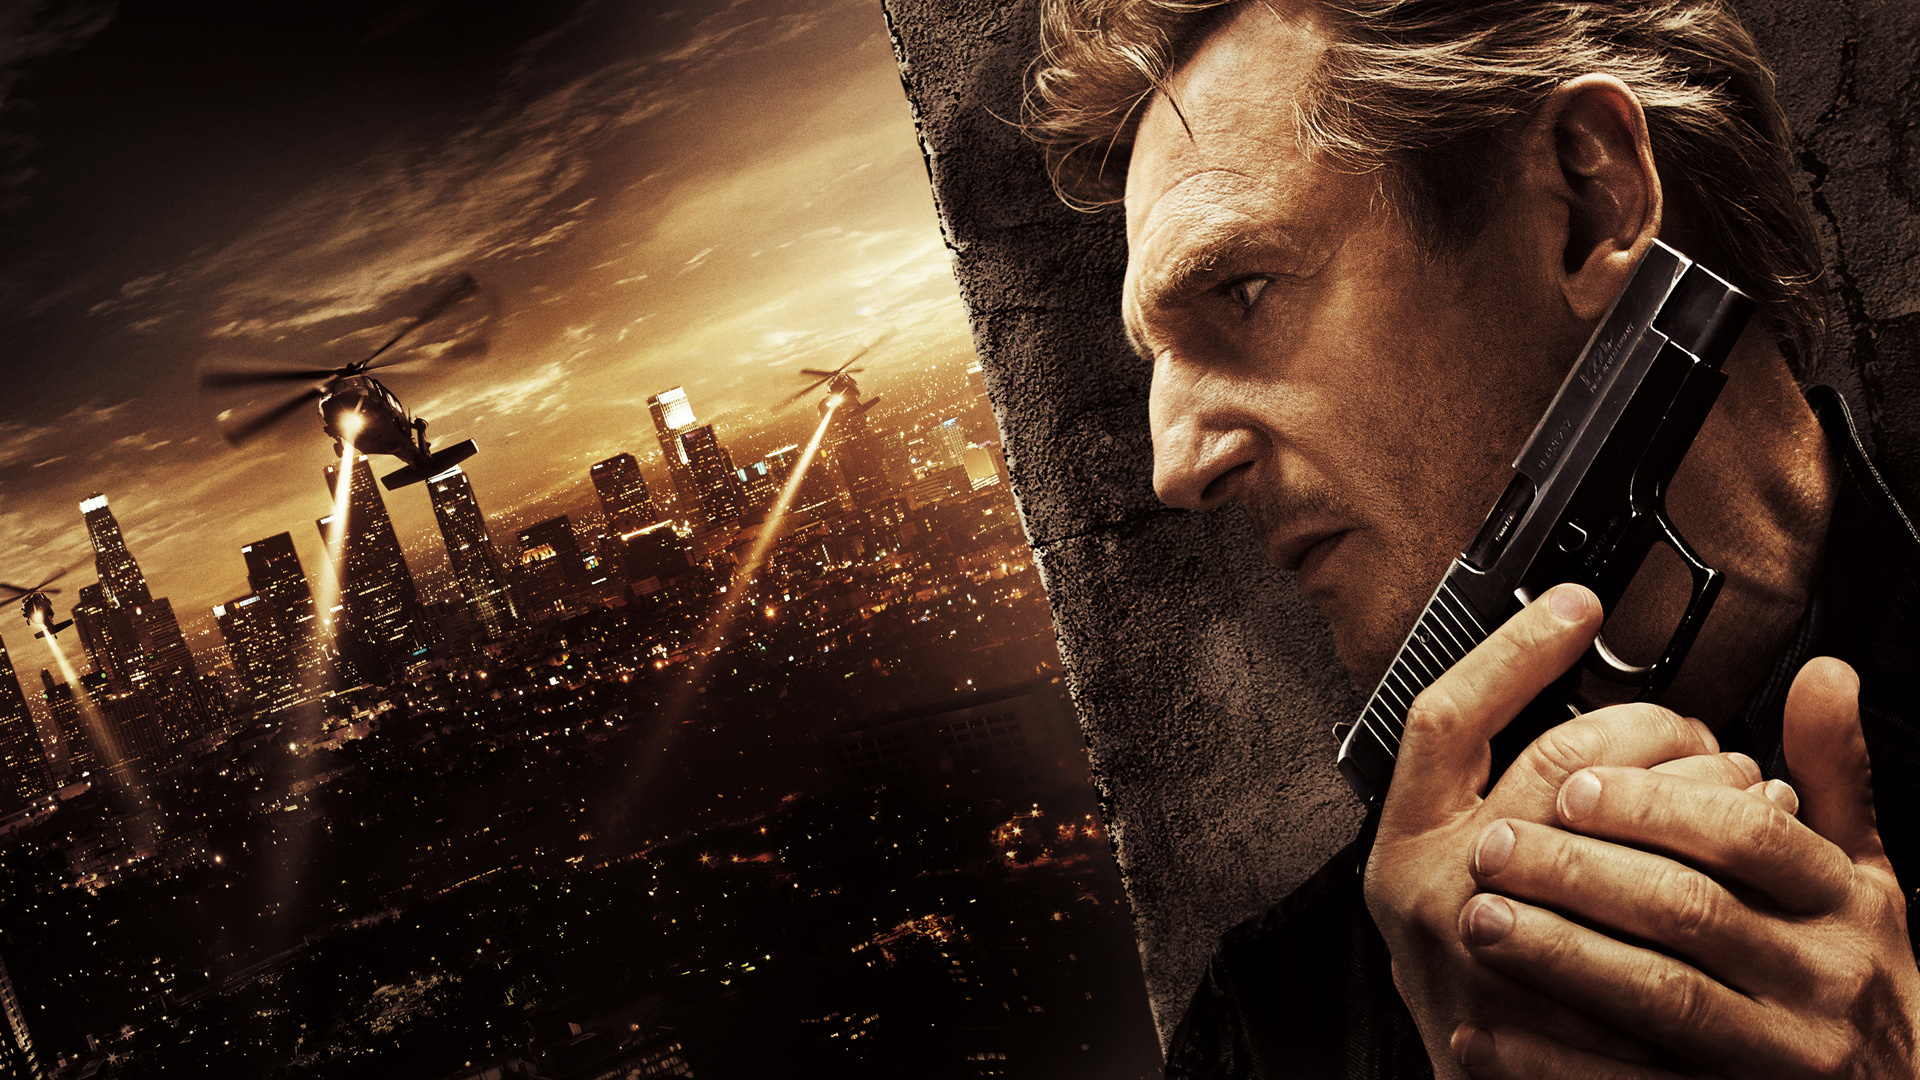 taken 3 full hd wallpaper and background image | 1920x1080 | id:675238